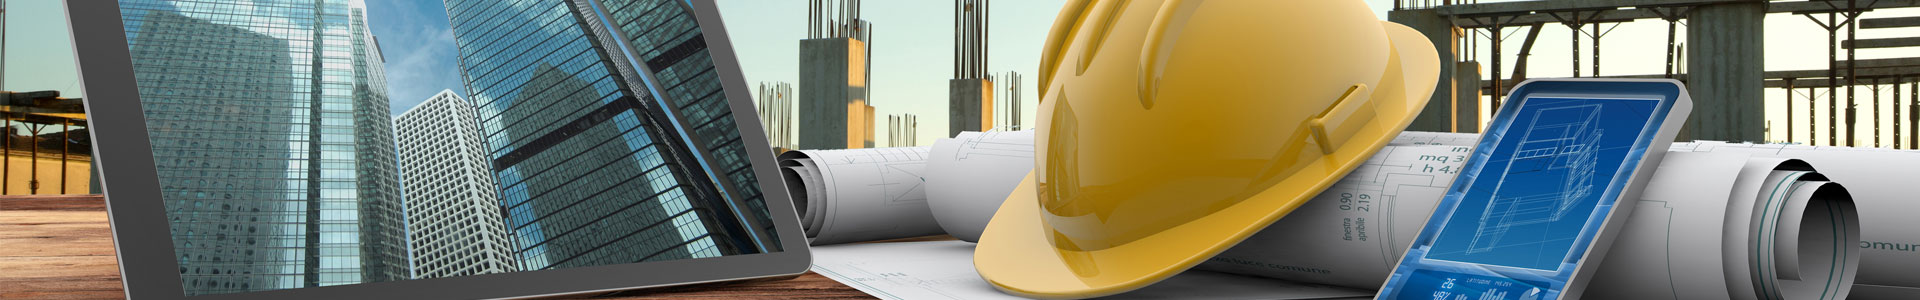 Building Contractors in Chennai